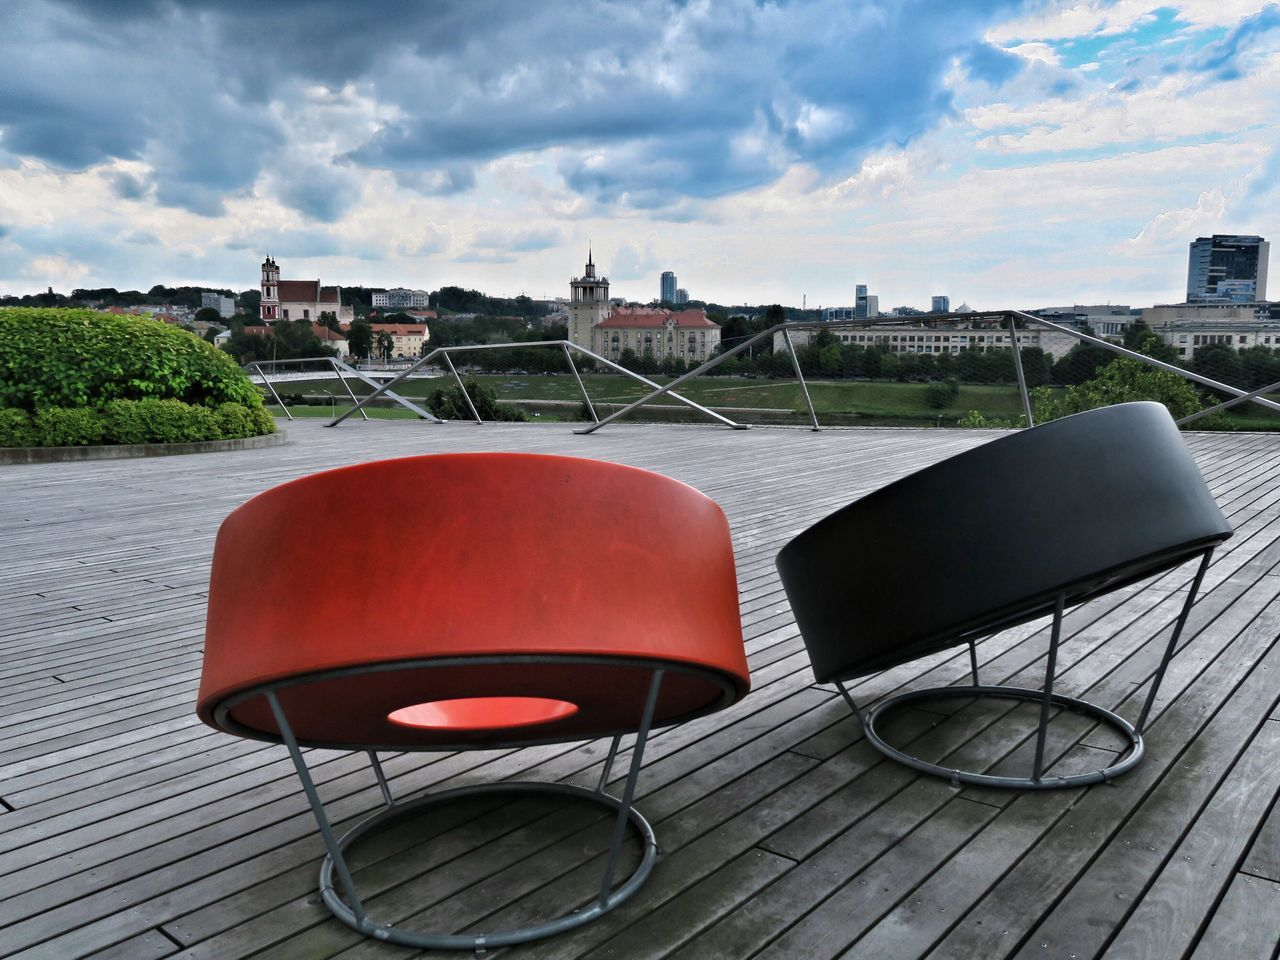 chair, sky, architecture, built structure, building exterior, terrace, outdoors, no people, day, cloud - sky, table, city, water, cityscape